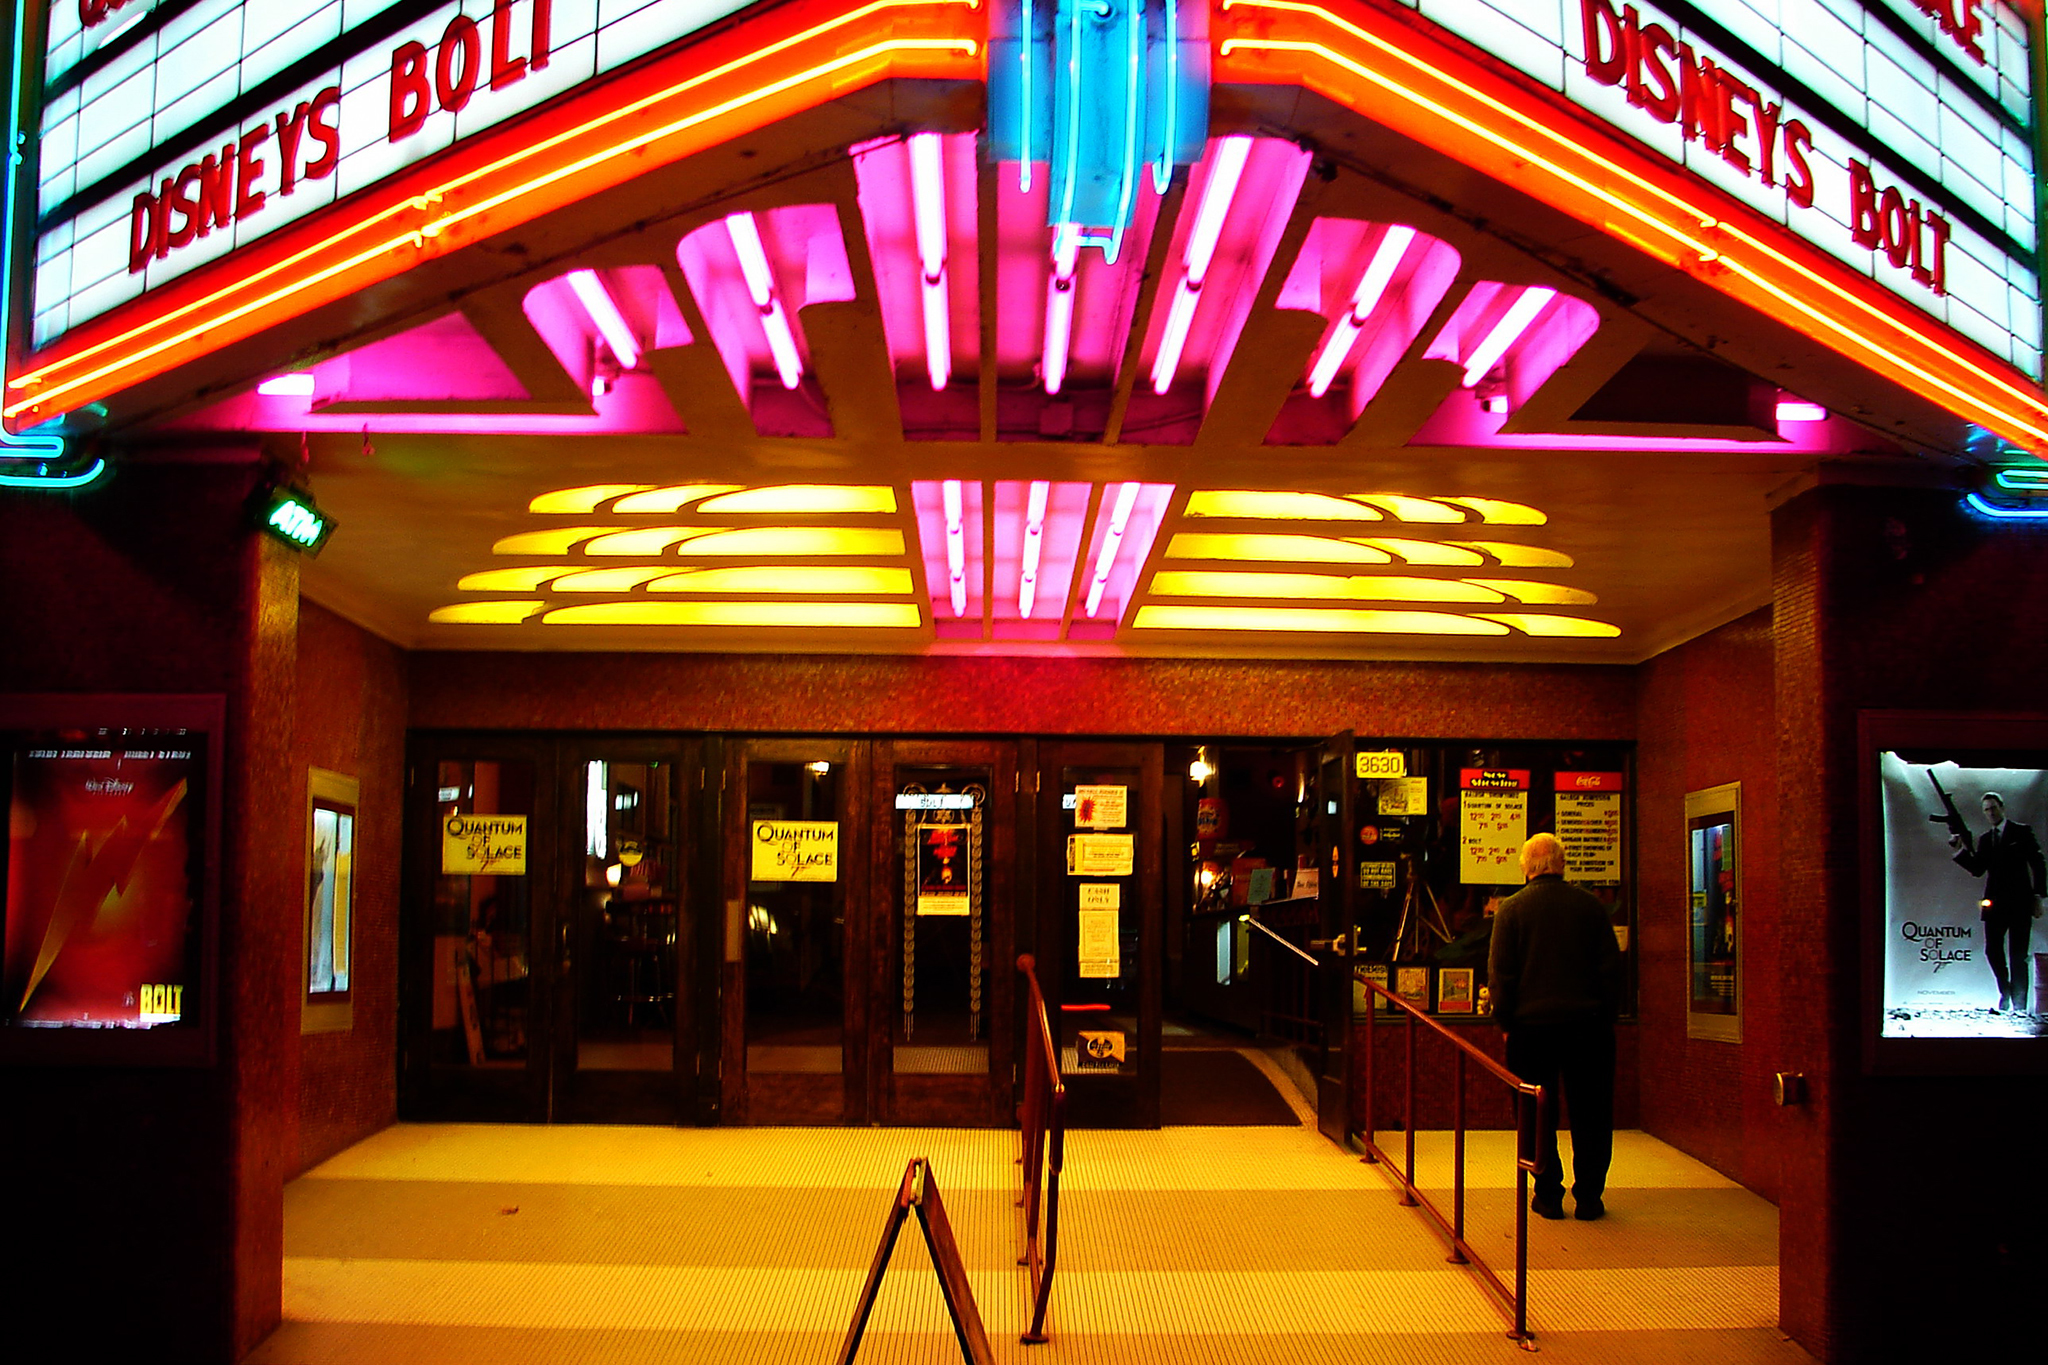 The best San Francisco movie theaters for new releases and indie films